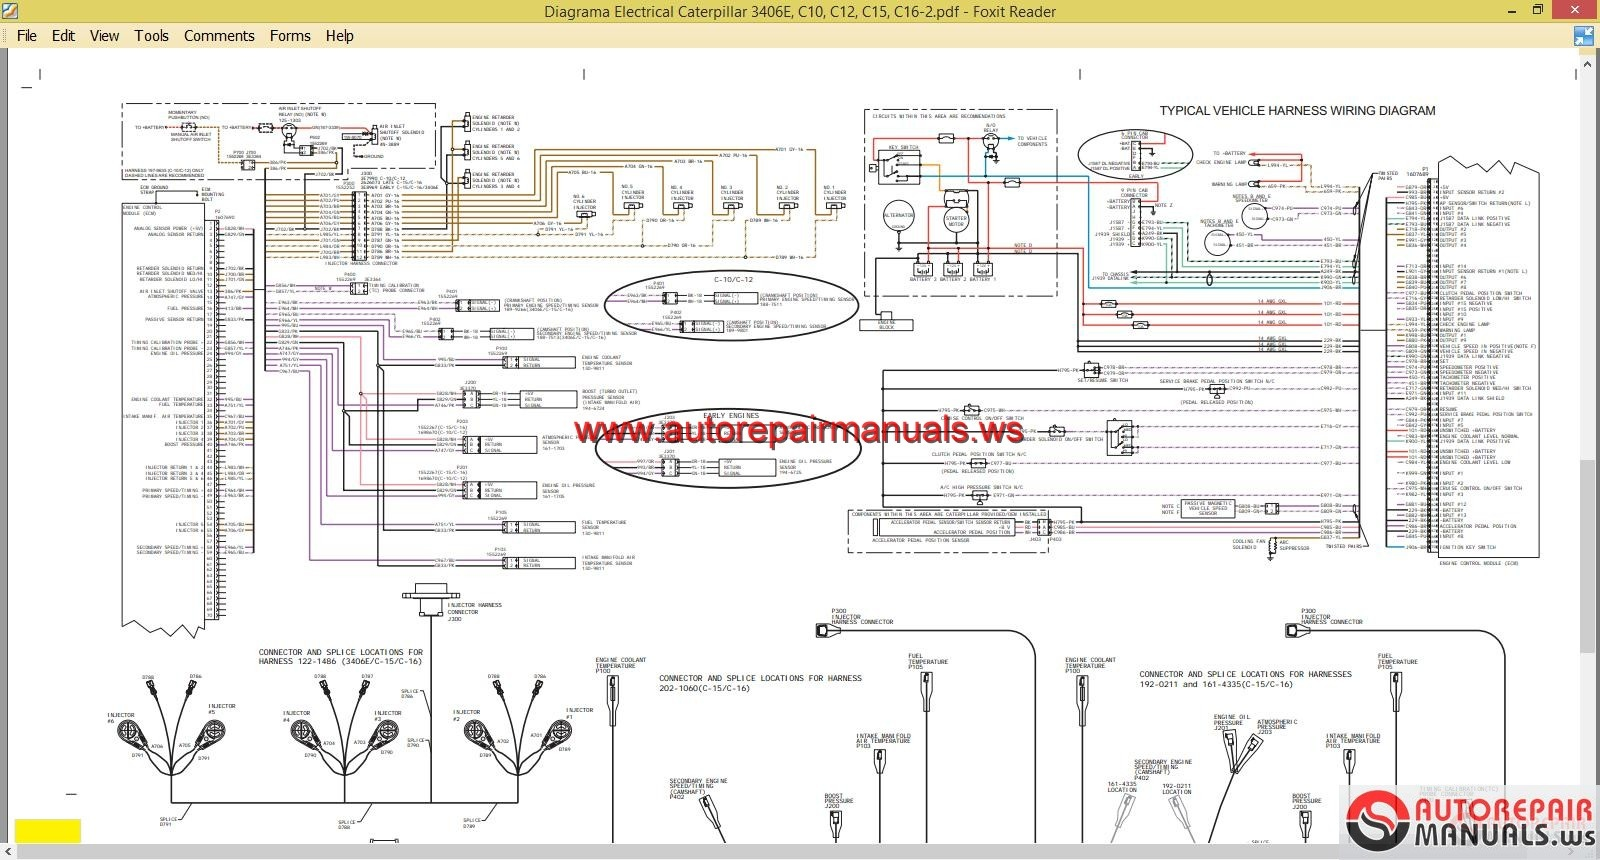 c12 cat engine ecm diagram 3116 cat engine wiring diagram caterpillar 3406e wiring diagram - somurich.com